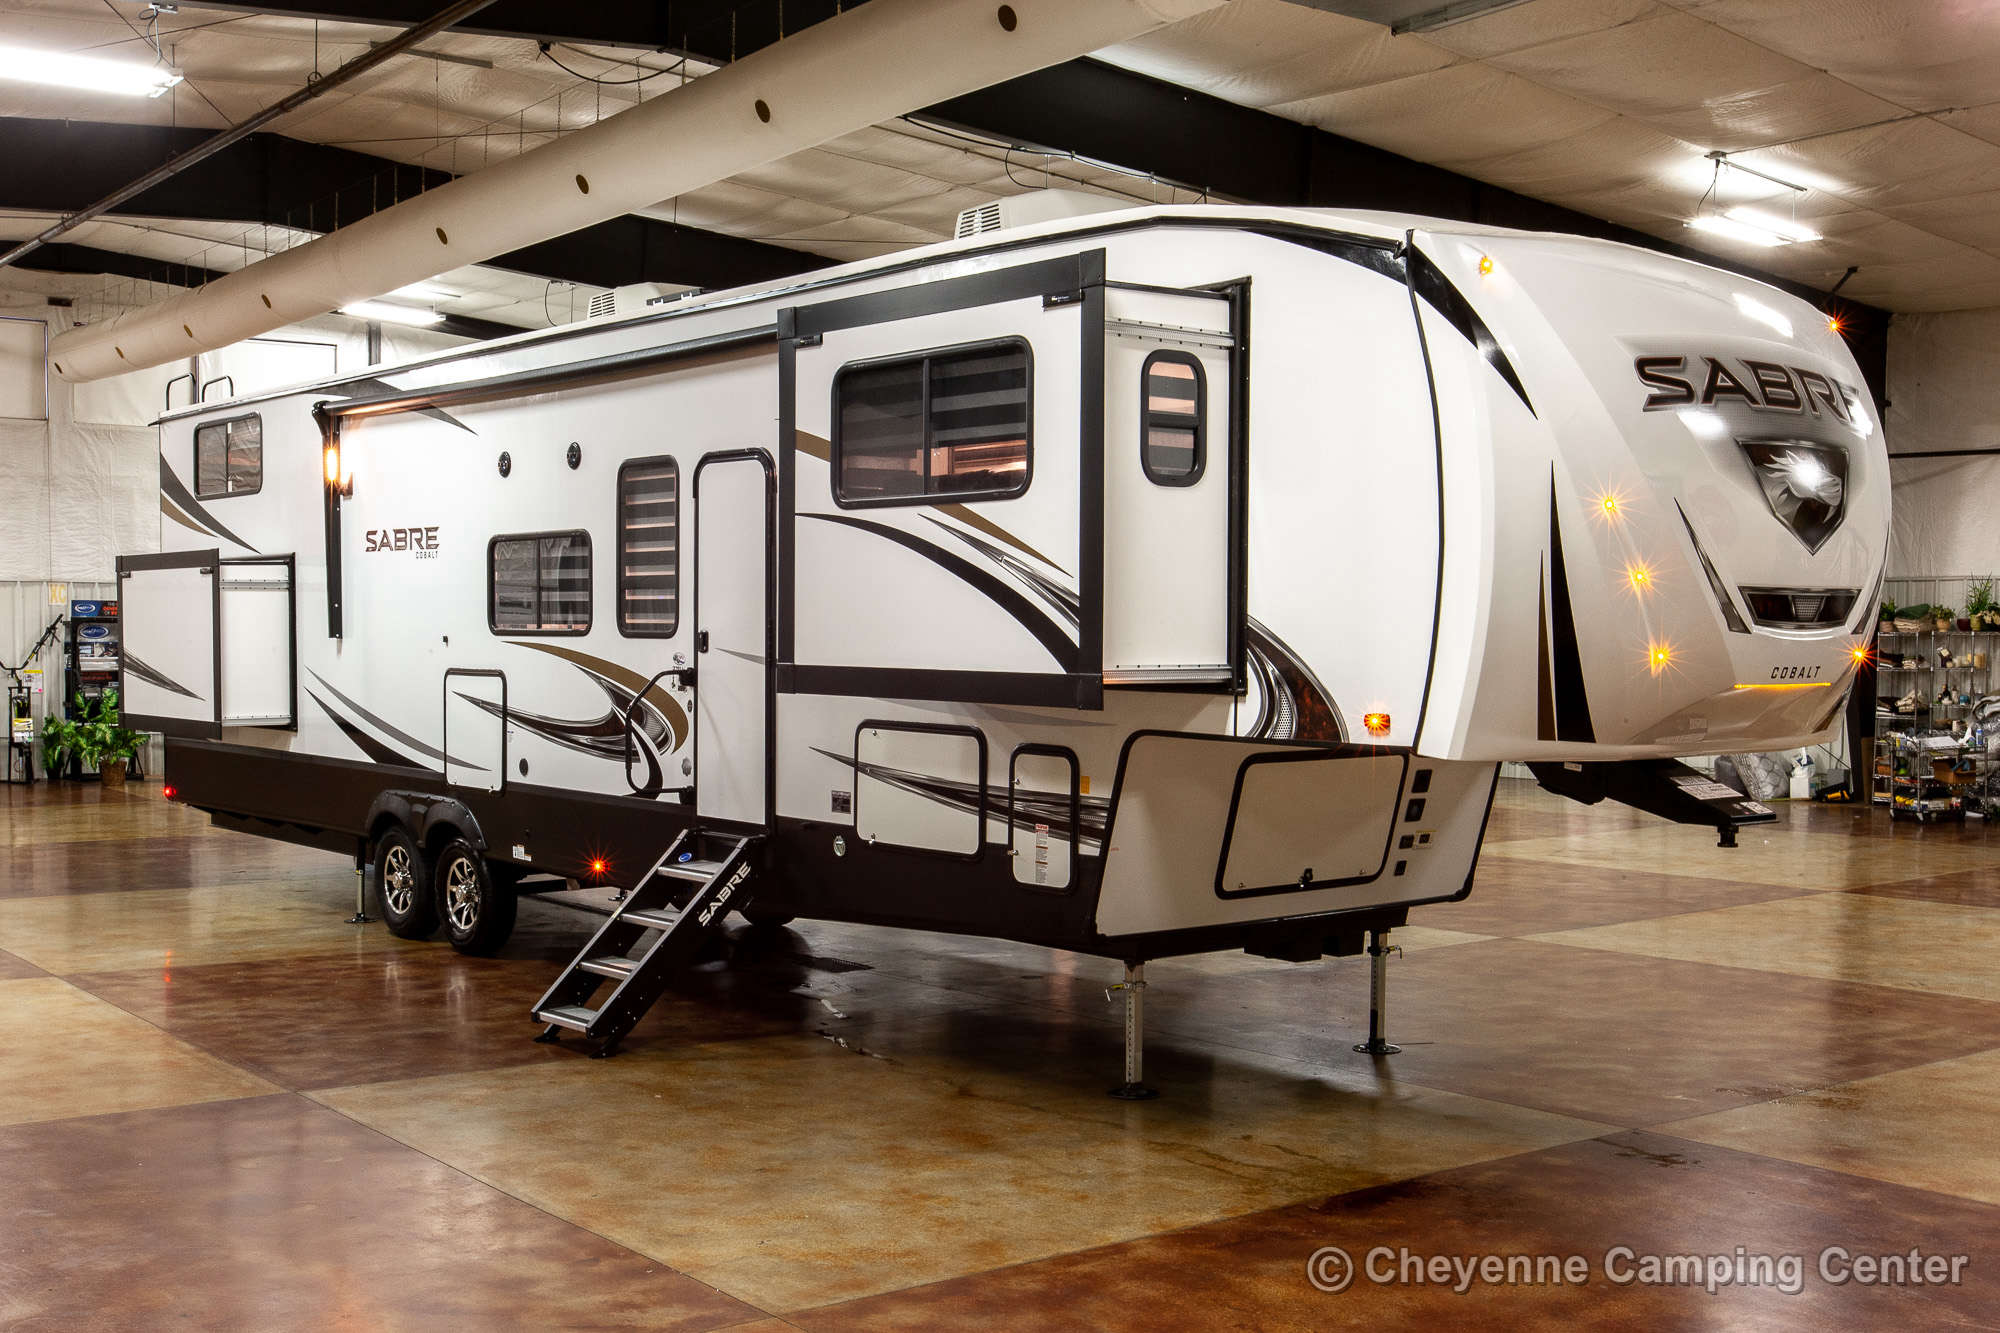 2021 Forest River Sabre Cobalt Edition 37FLL Bunkhouse Fifth Wheel